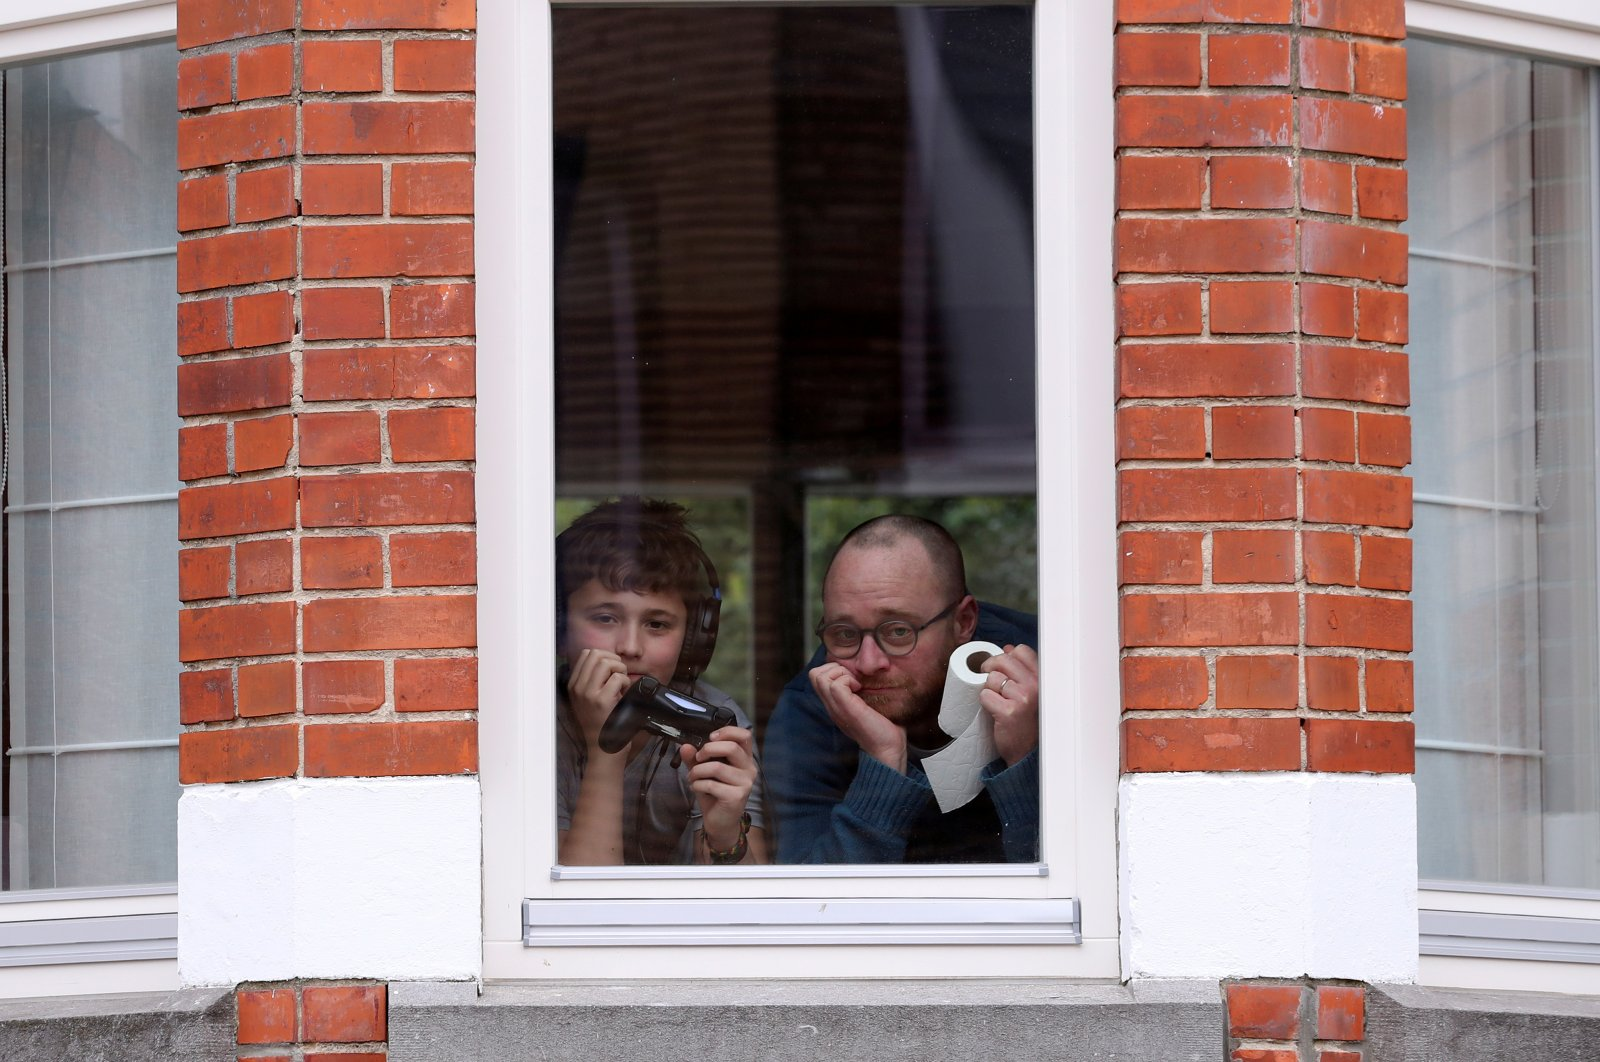 Resident Laurent Lanthier and his son Robin pose behind the window of their home during a coronavirus lockdown imposed by the Belgian government in an attempt to slow down the coronavirus outbreak, in Brussels, Belgium, March 19, 2020. (Reuters Photo)